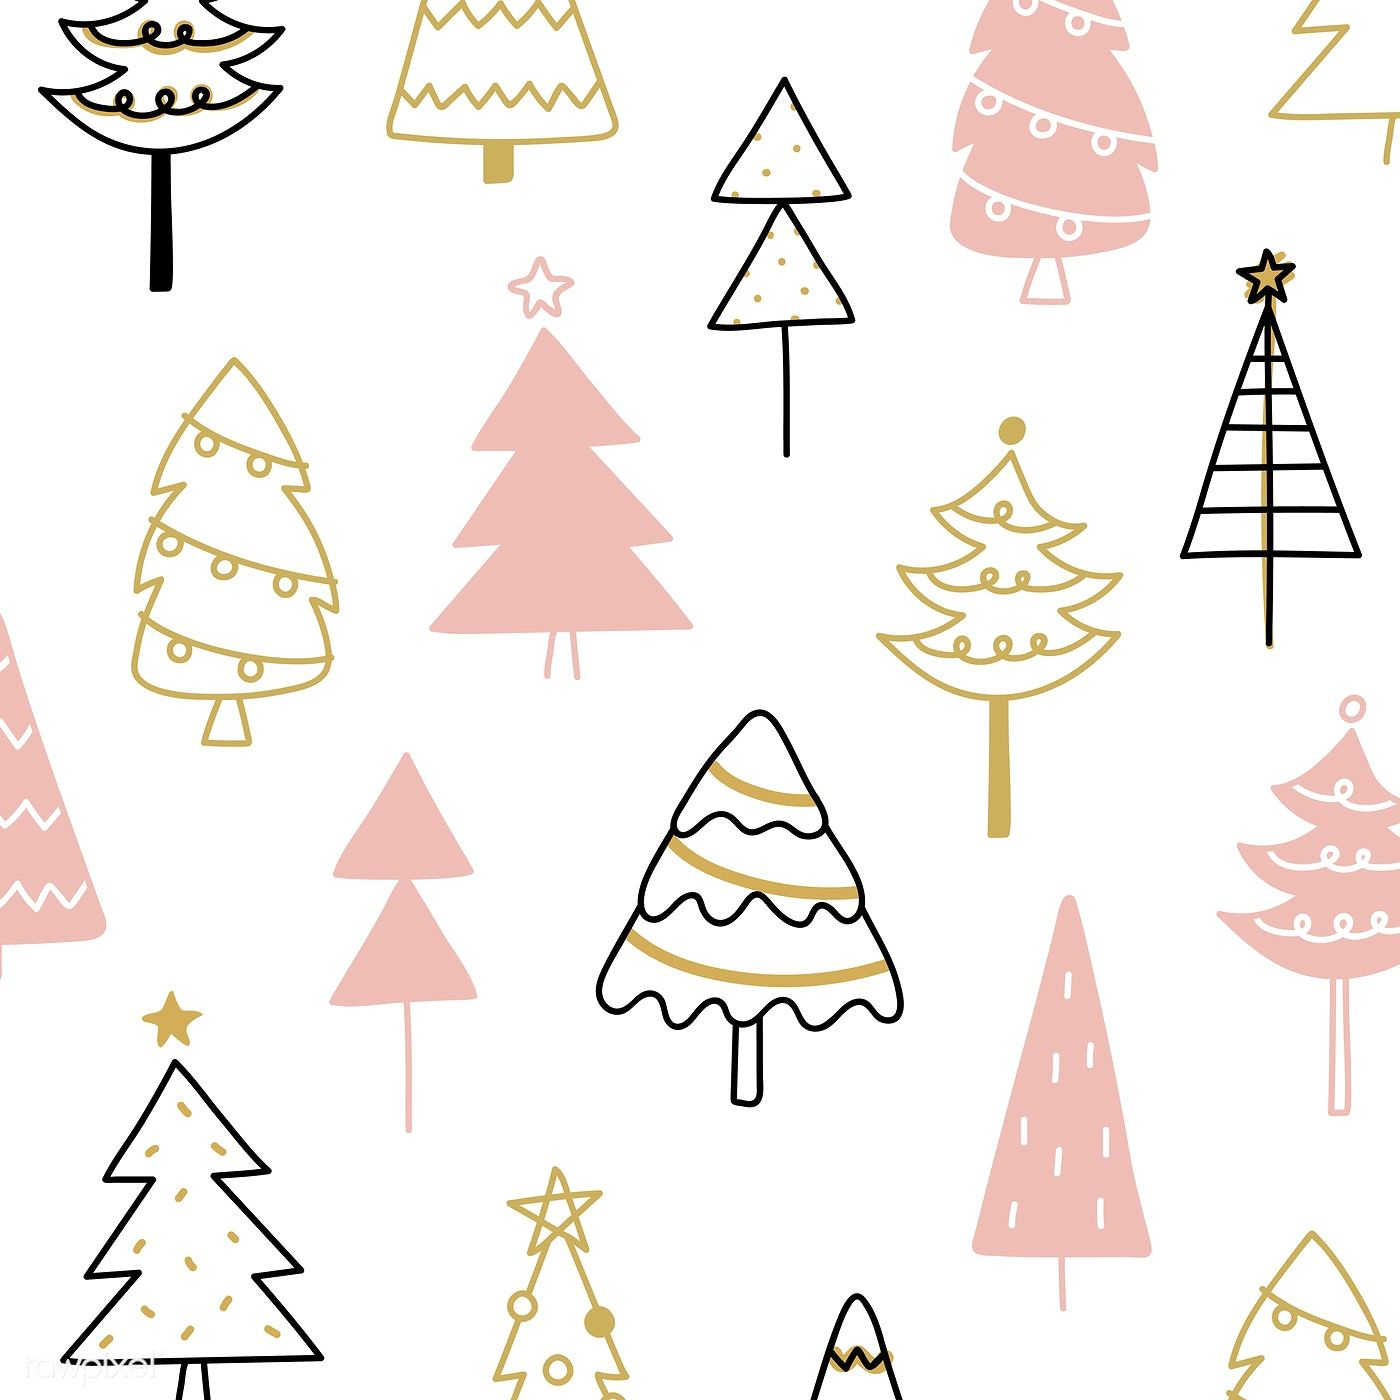 Christmas Pine Tree Pattern Background Drawing Doodle Style Free Image By Rawpixel Com Christmas Pattern Background Christmas Tree Design Tree Illustration